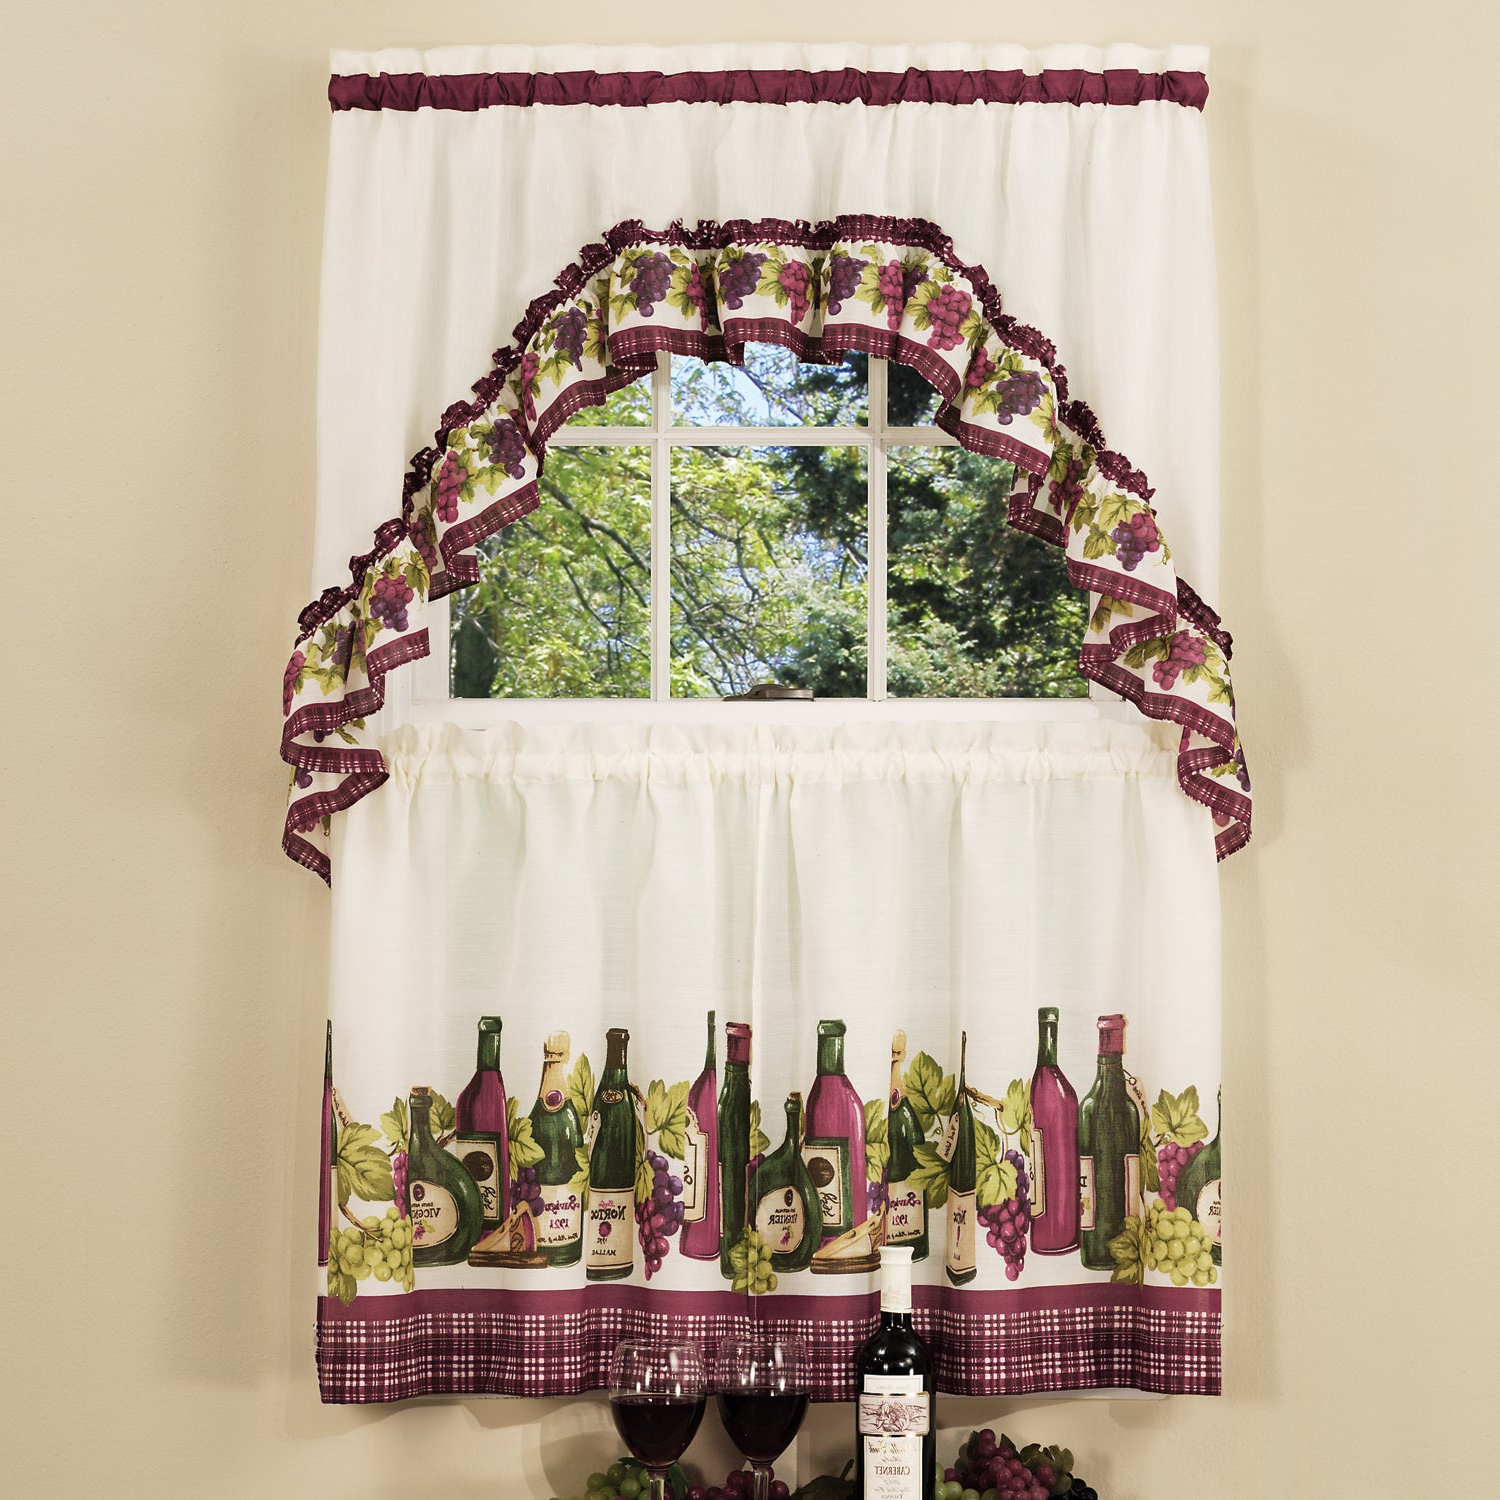 Traditional Two Piece Tailored Tier And Swag Window Curtains Set With Classic French Wine And Grapes Print – 36 Inch In Newest Chateau Wines Cottage Kitchen Curtain Tier And Valance Sets (View 15 of 20)